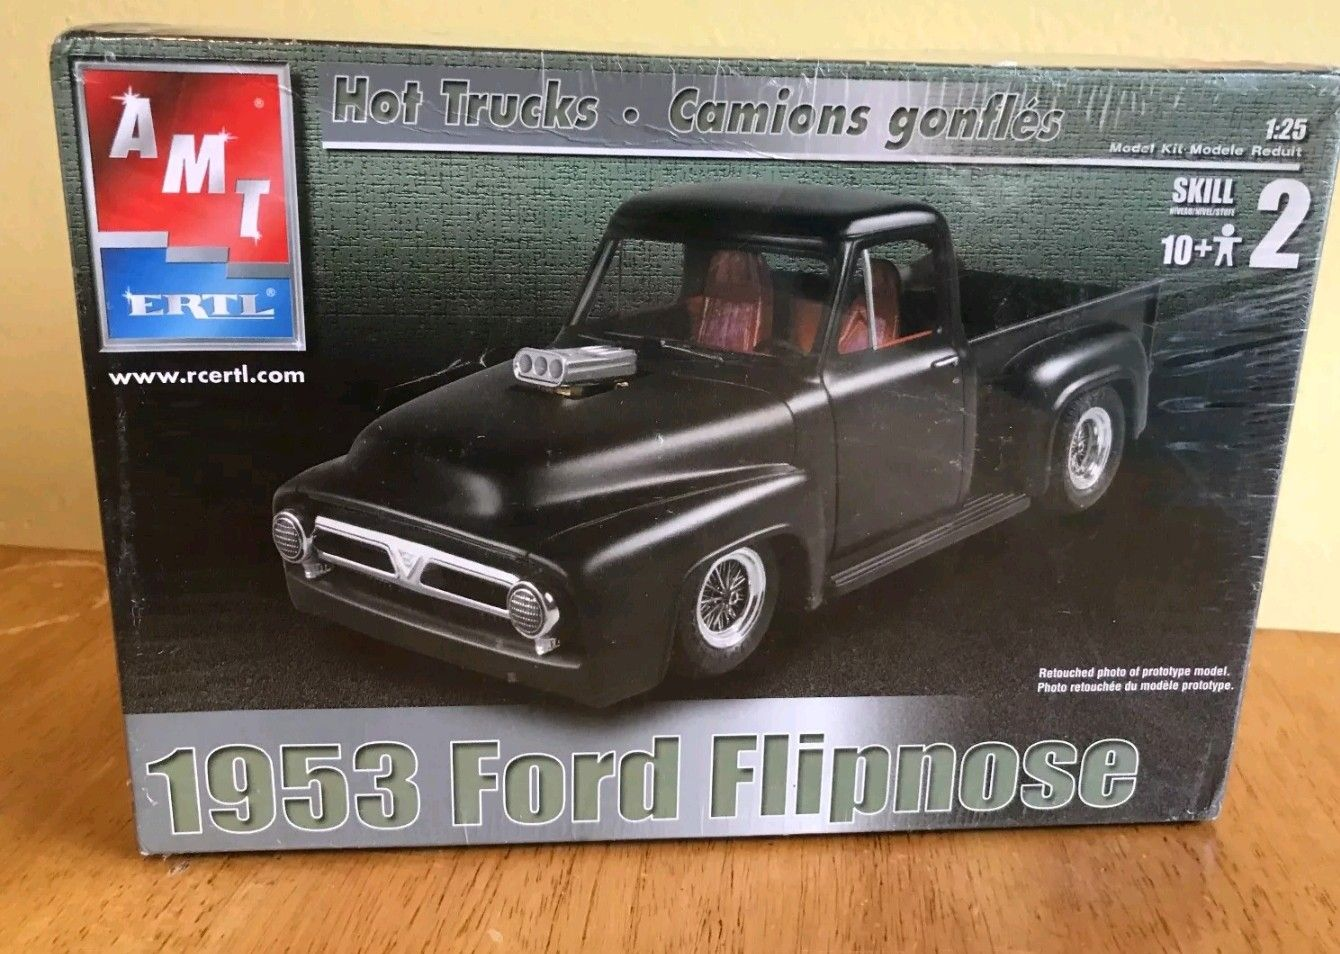 Pin by Jamie Grimes on Scale Model Cars, Trucks, customs